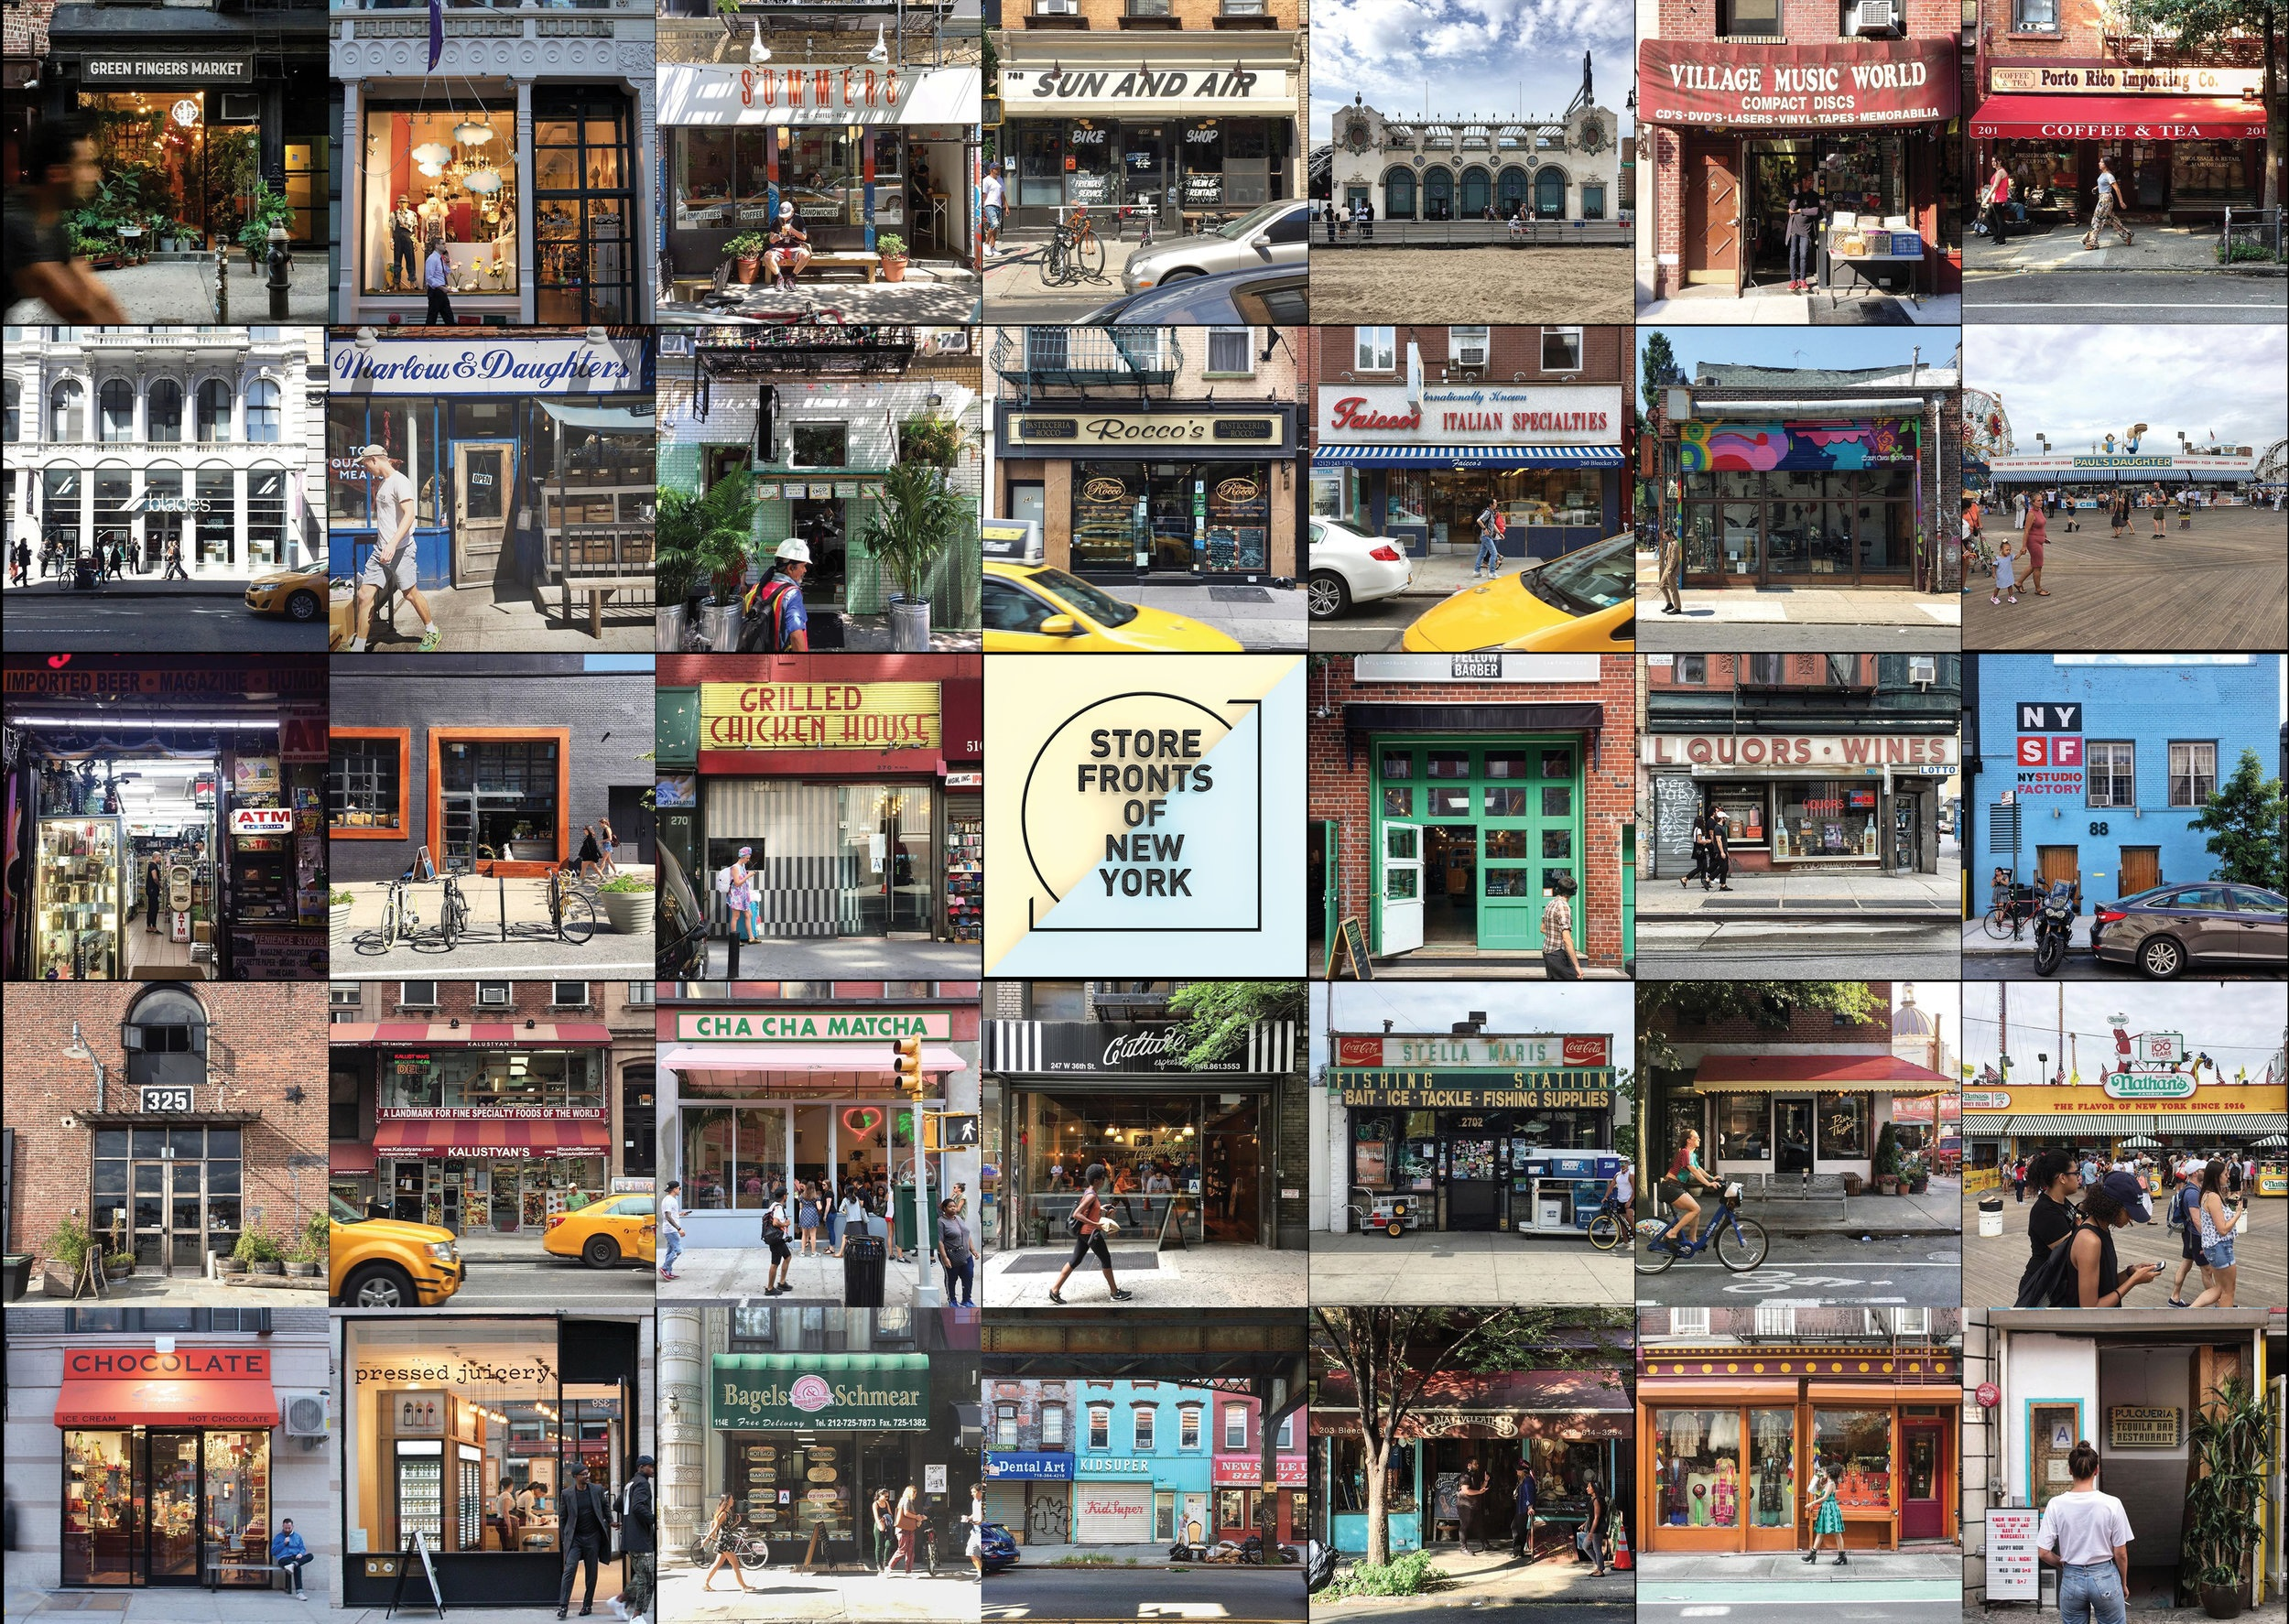 Storefronts of New York - Experiment No.04 -A photo series documenting storefronts of NYC